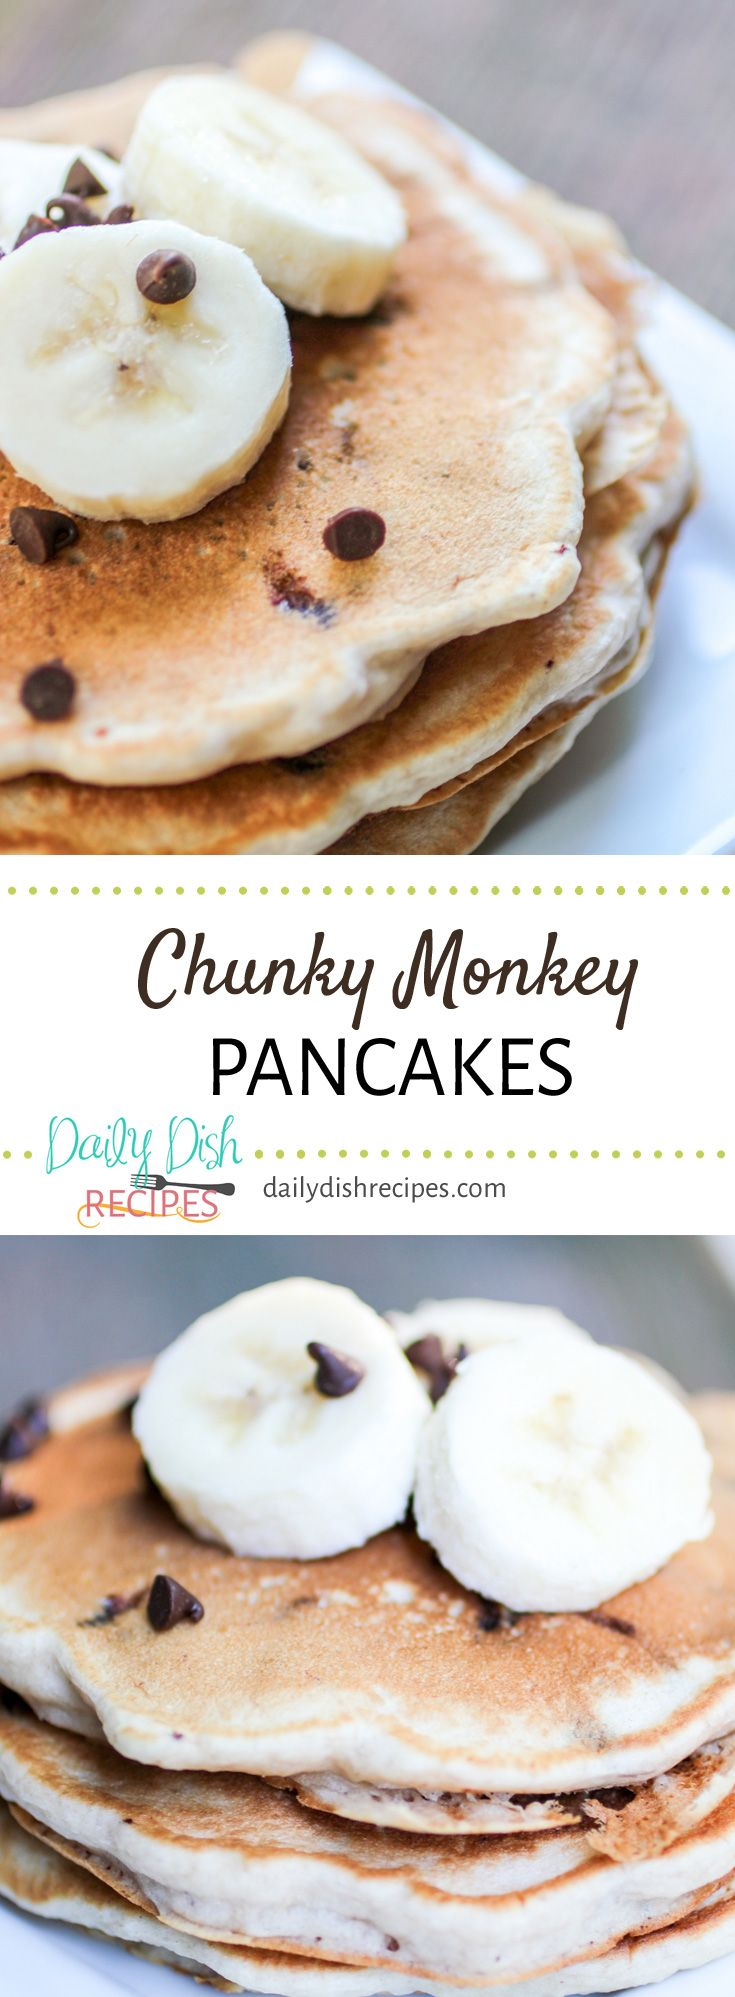 Who doesn't love bananas and chocolate? Chunky Monkey Pancakes are flavorful and delicious. We just stir the bananas and chocolate right into some fluffy pancake batter, and you've got perfection. We enjoyed them for a 'breakfast for dinner' with turkey sausage, bacon and eggs. Delish (and very very filling!) via @dailydishrecipes